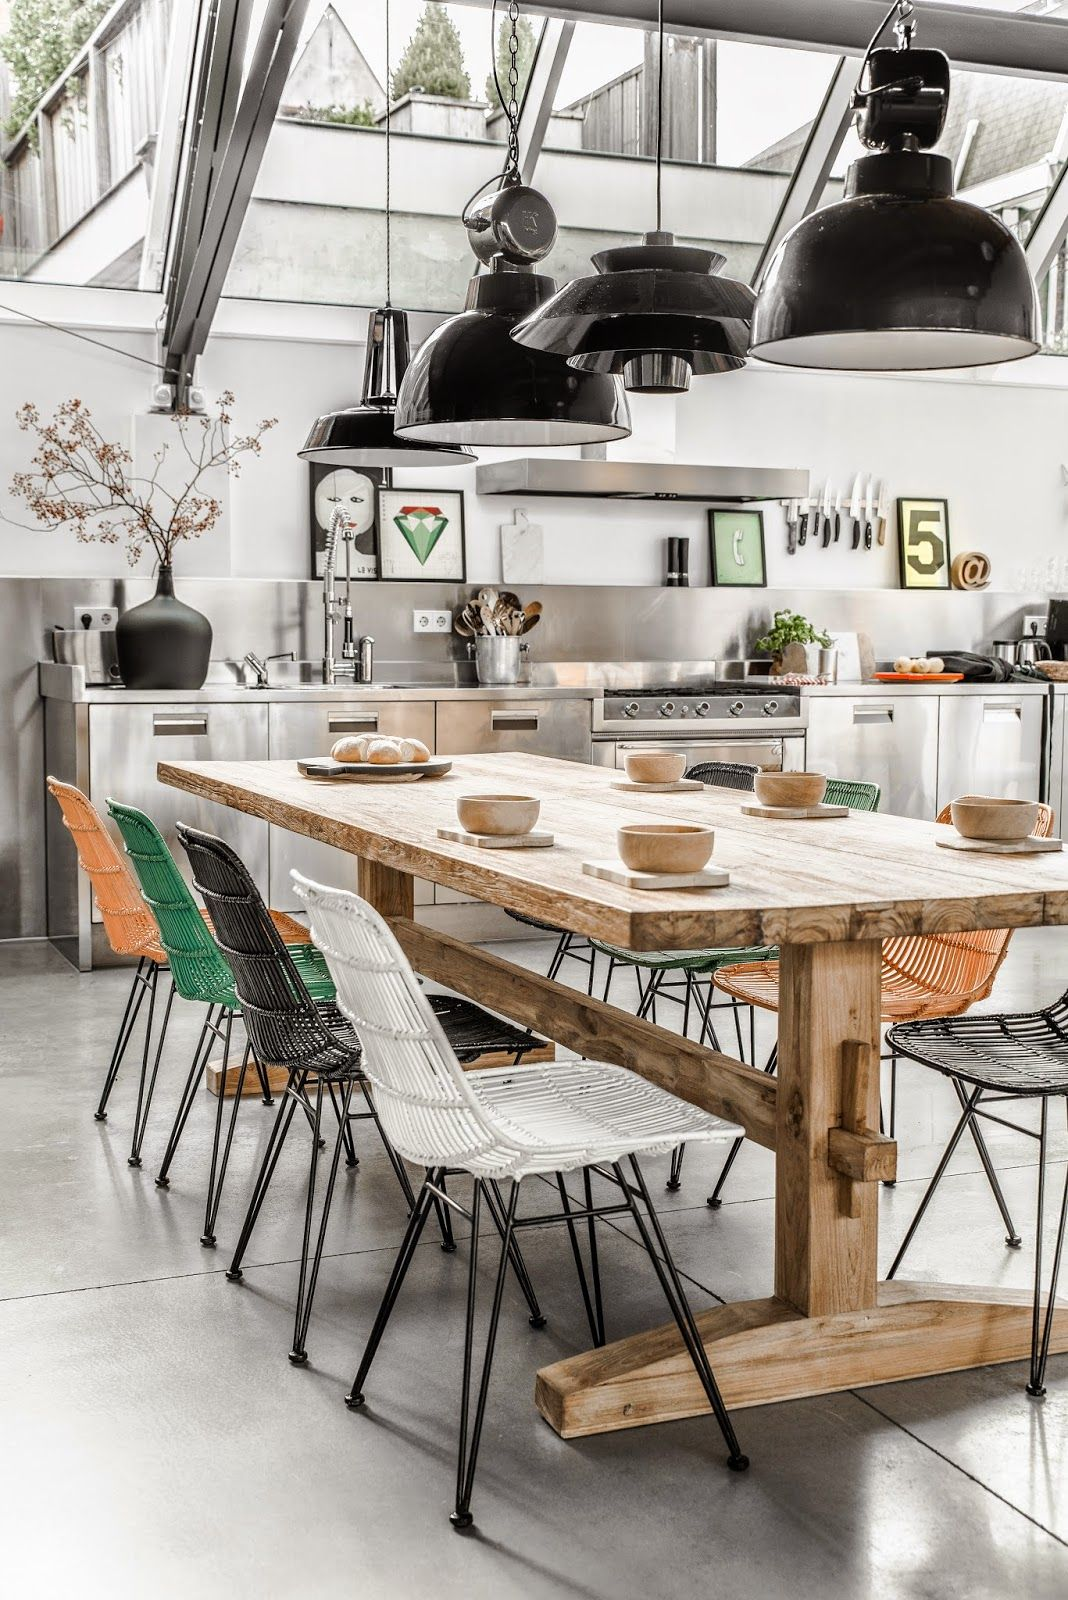 This Modern Kitchen And Dining Room Features Black Pendant Lights, A Rustic  Wood Dining Table W/ Colorful Chairs, U0026 Plenty Of Art U0026 Plant Decor.